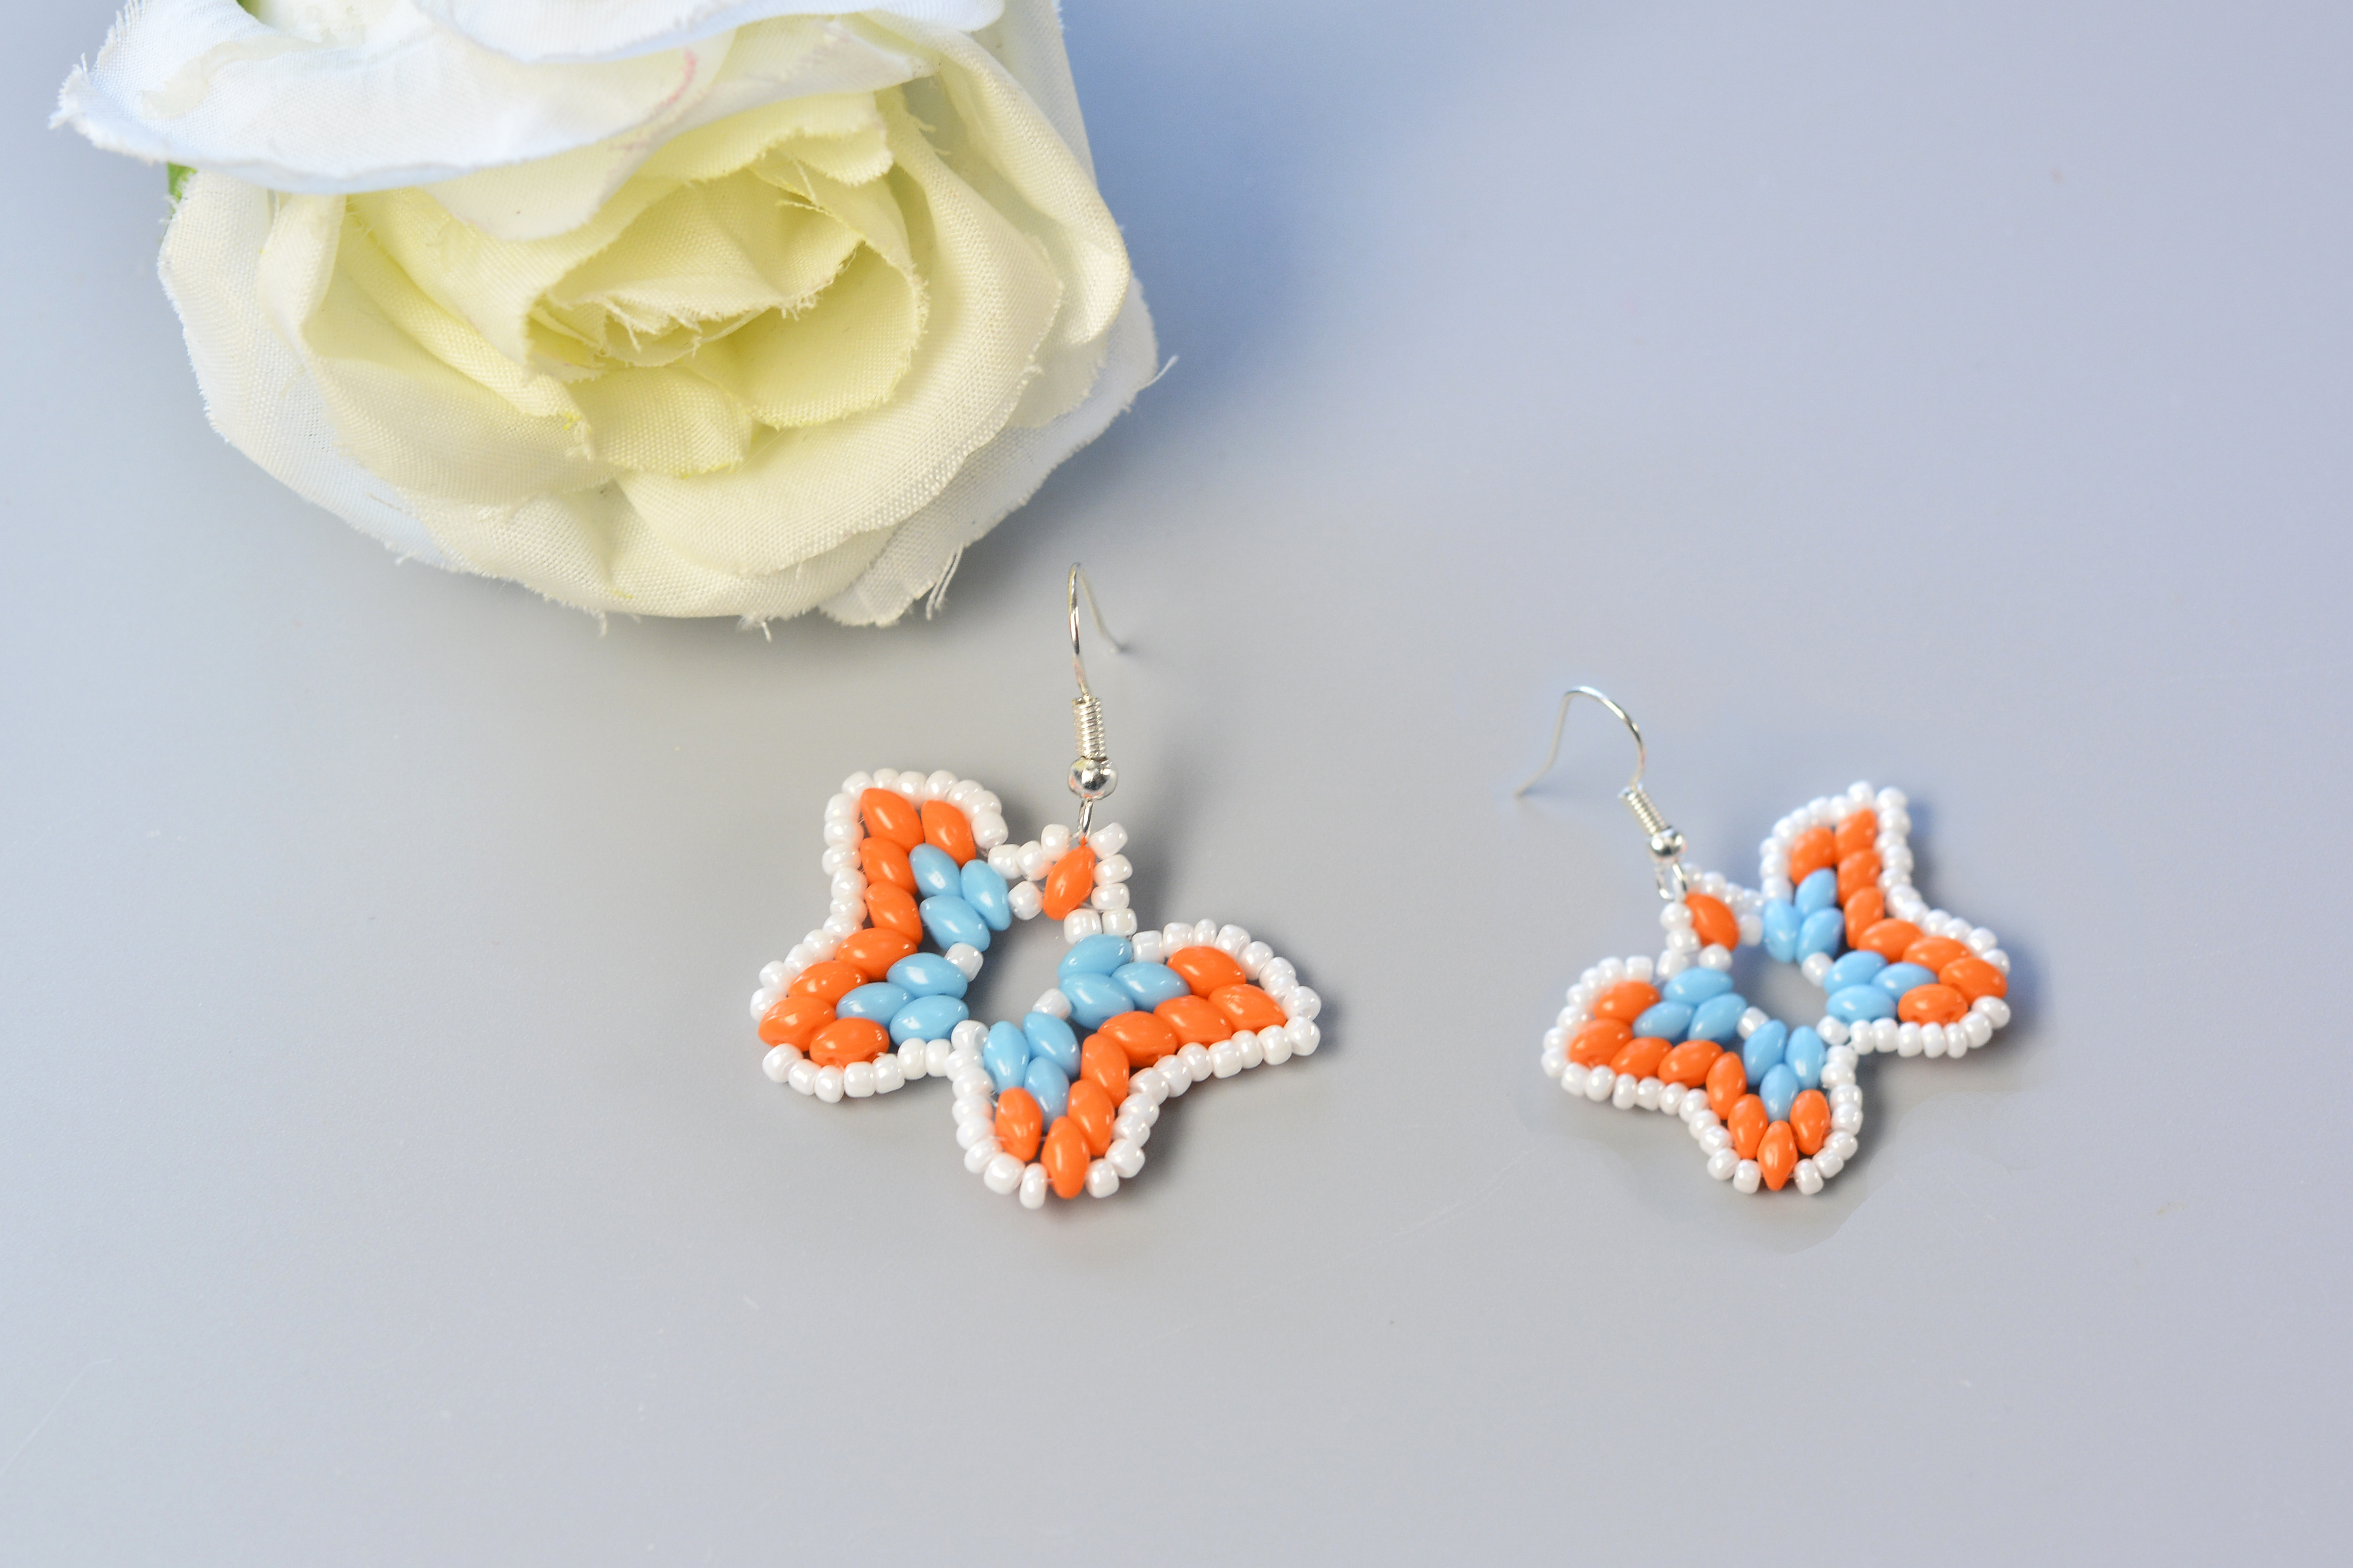 Picture of Here Is the Final Look of the 2-hole Seed Bead Butterfly Earrings.